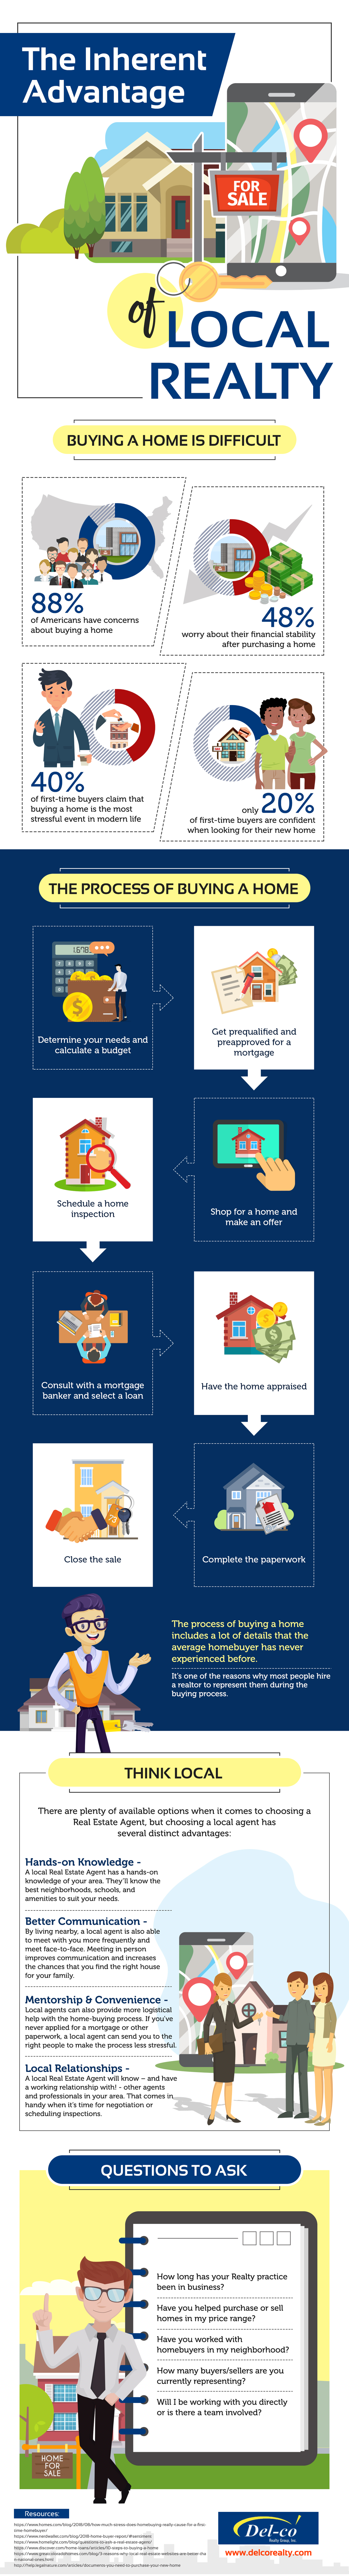 The homebuying process can be overwhelming and full of many challenges, but working with an experienced real estate agency in your local area can help improve the stressful situation